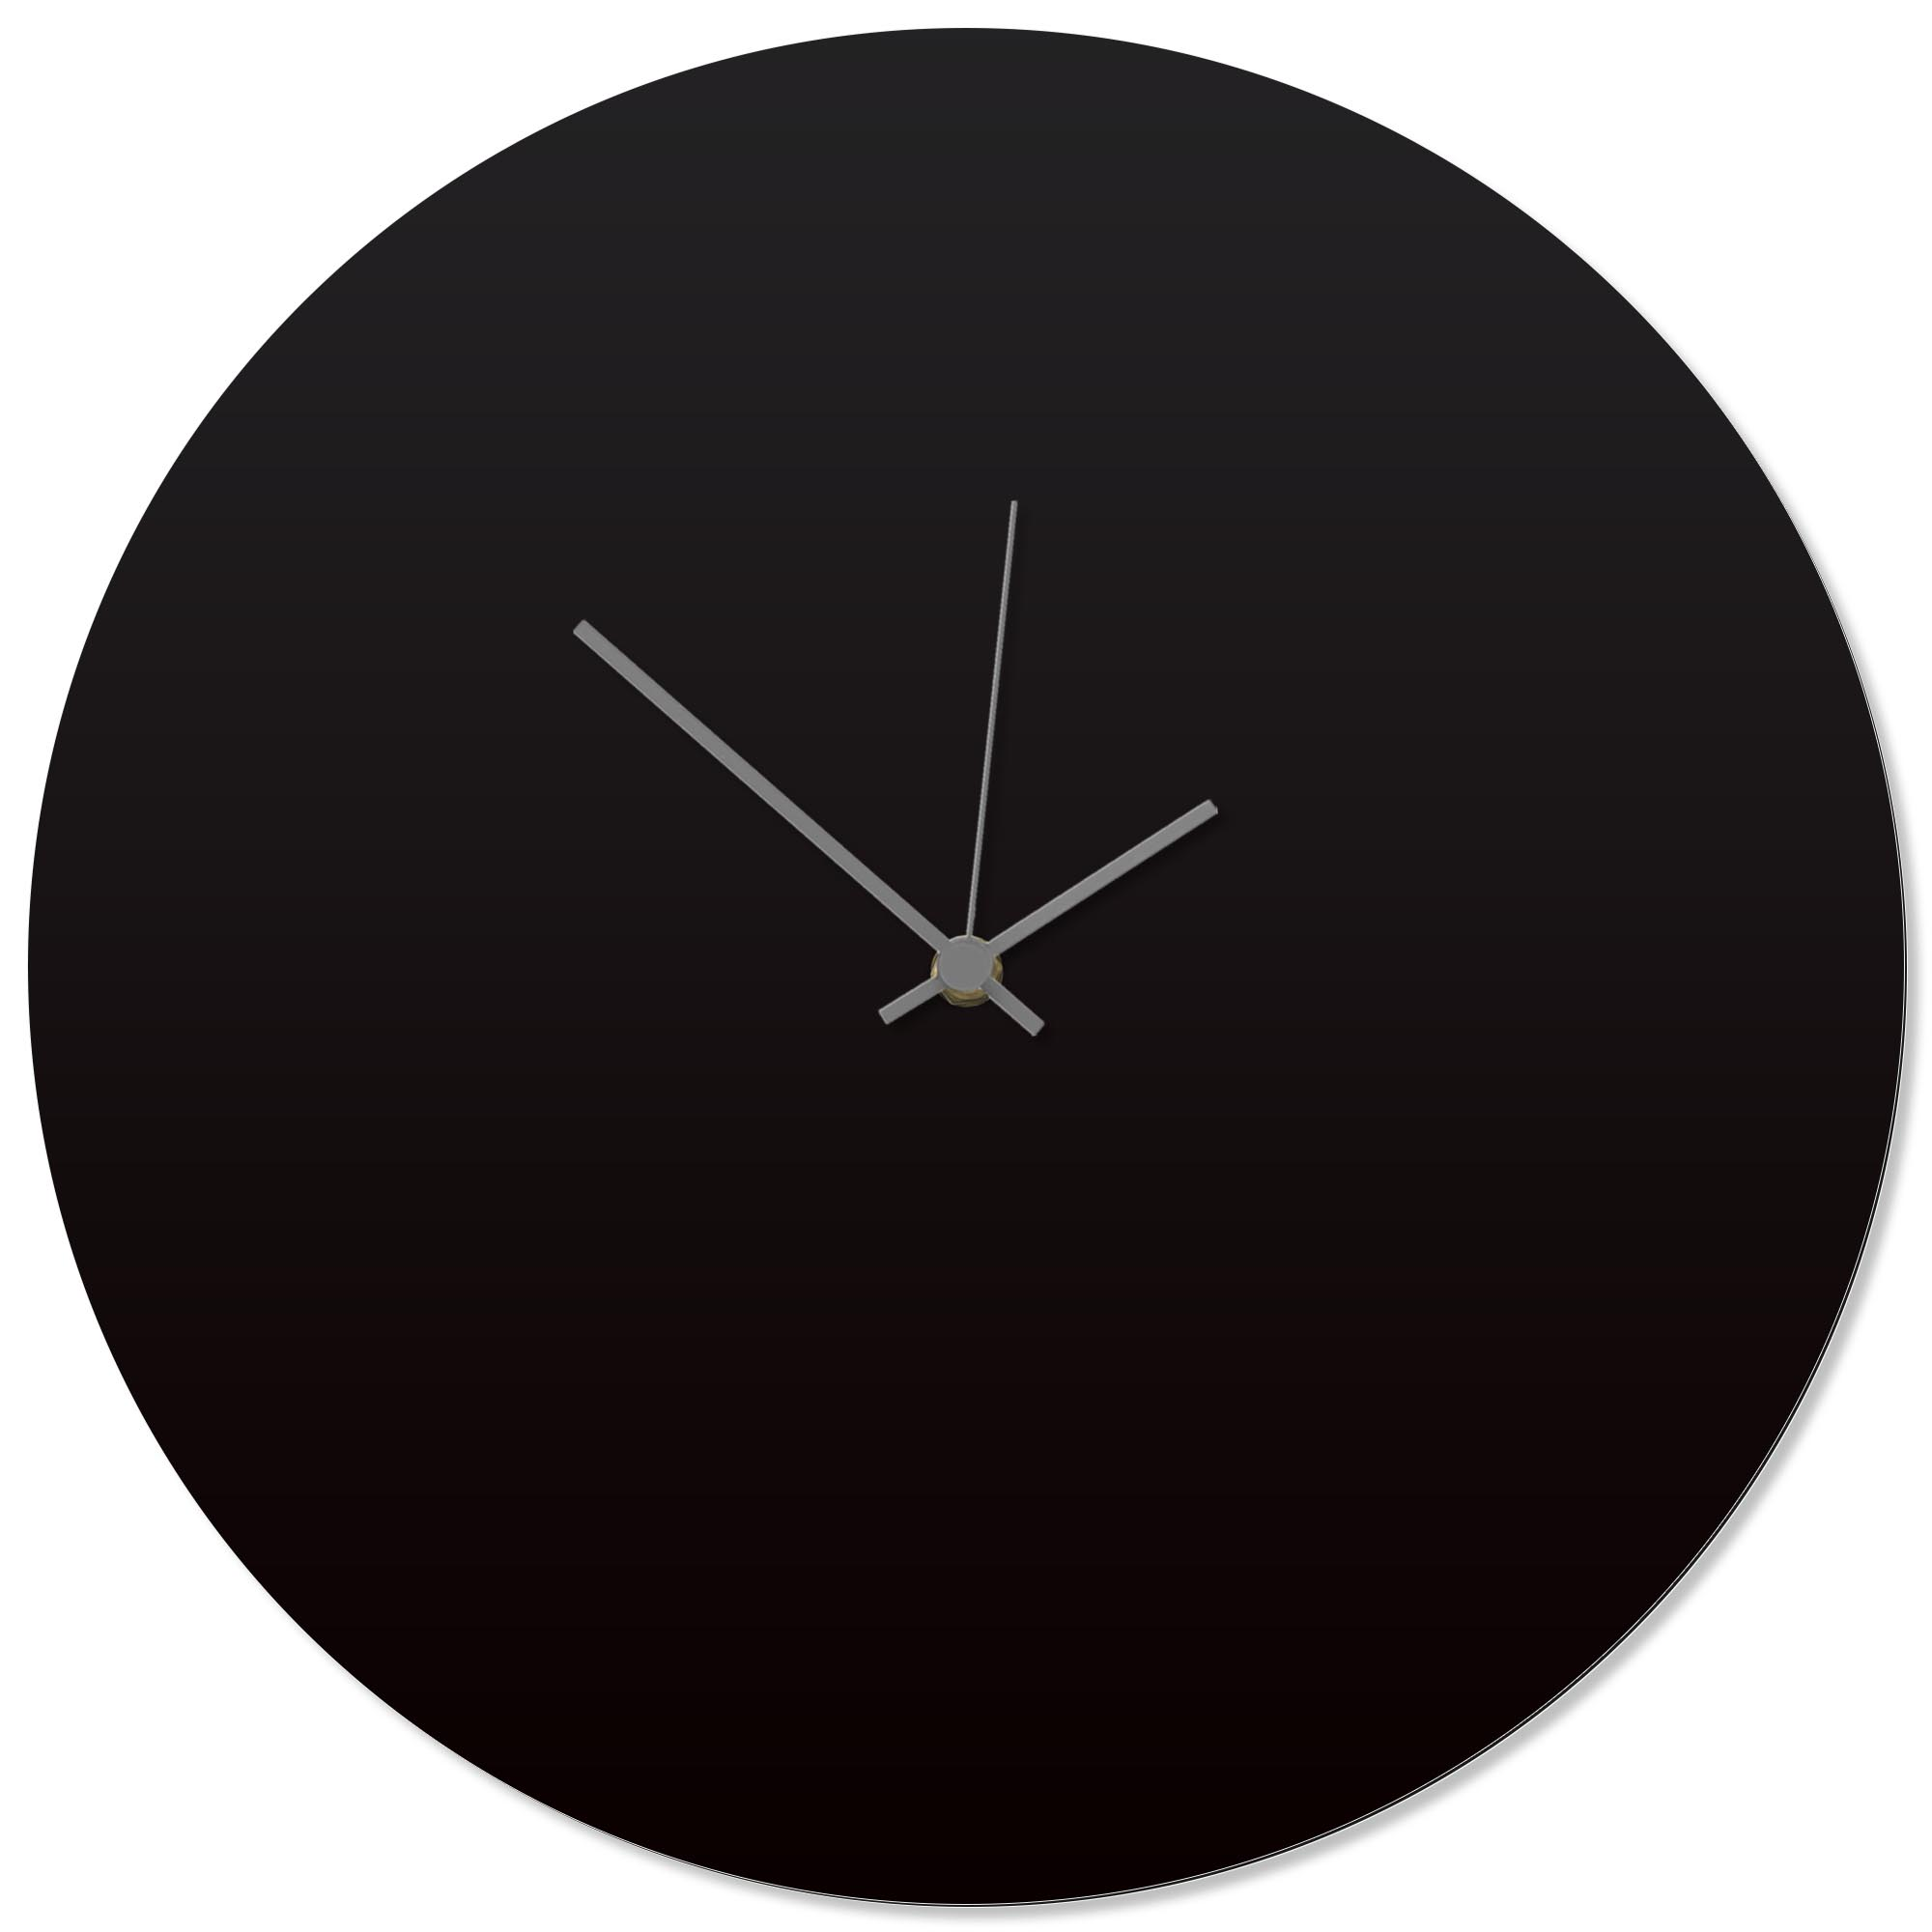 Blackout Grey Circle Clock 16x16in. Aluminum Polymetal